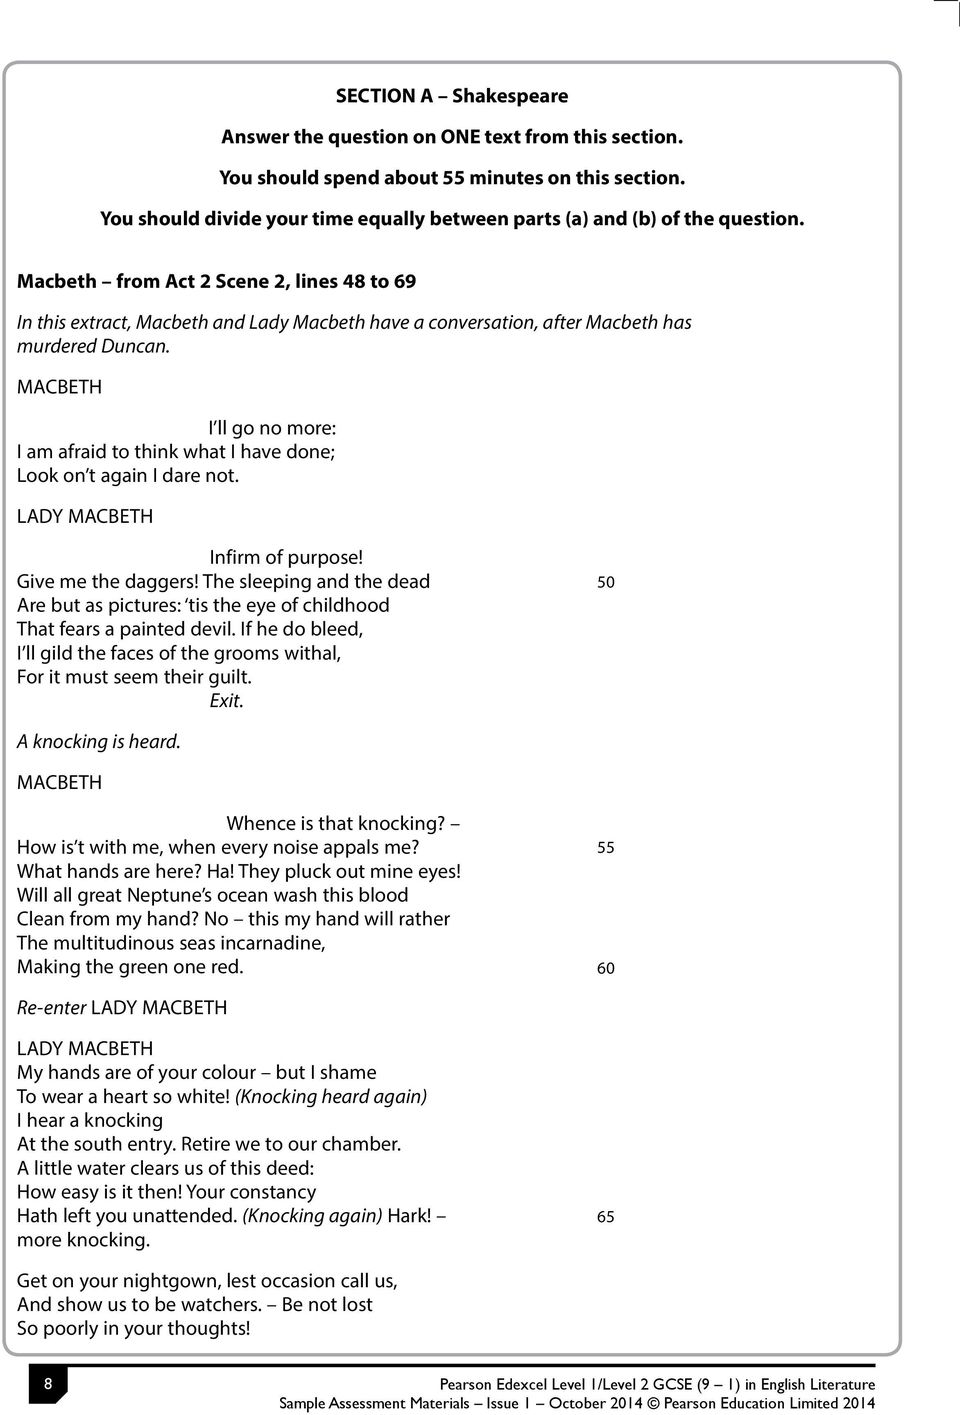 gcse english literature exemplars pdf macbeth from act 2 scene 2 lines 48 to 69 in this extract macbeth